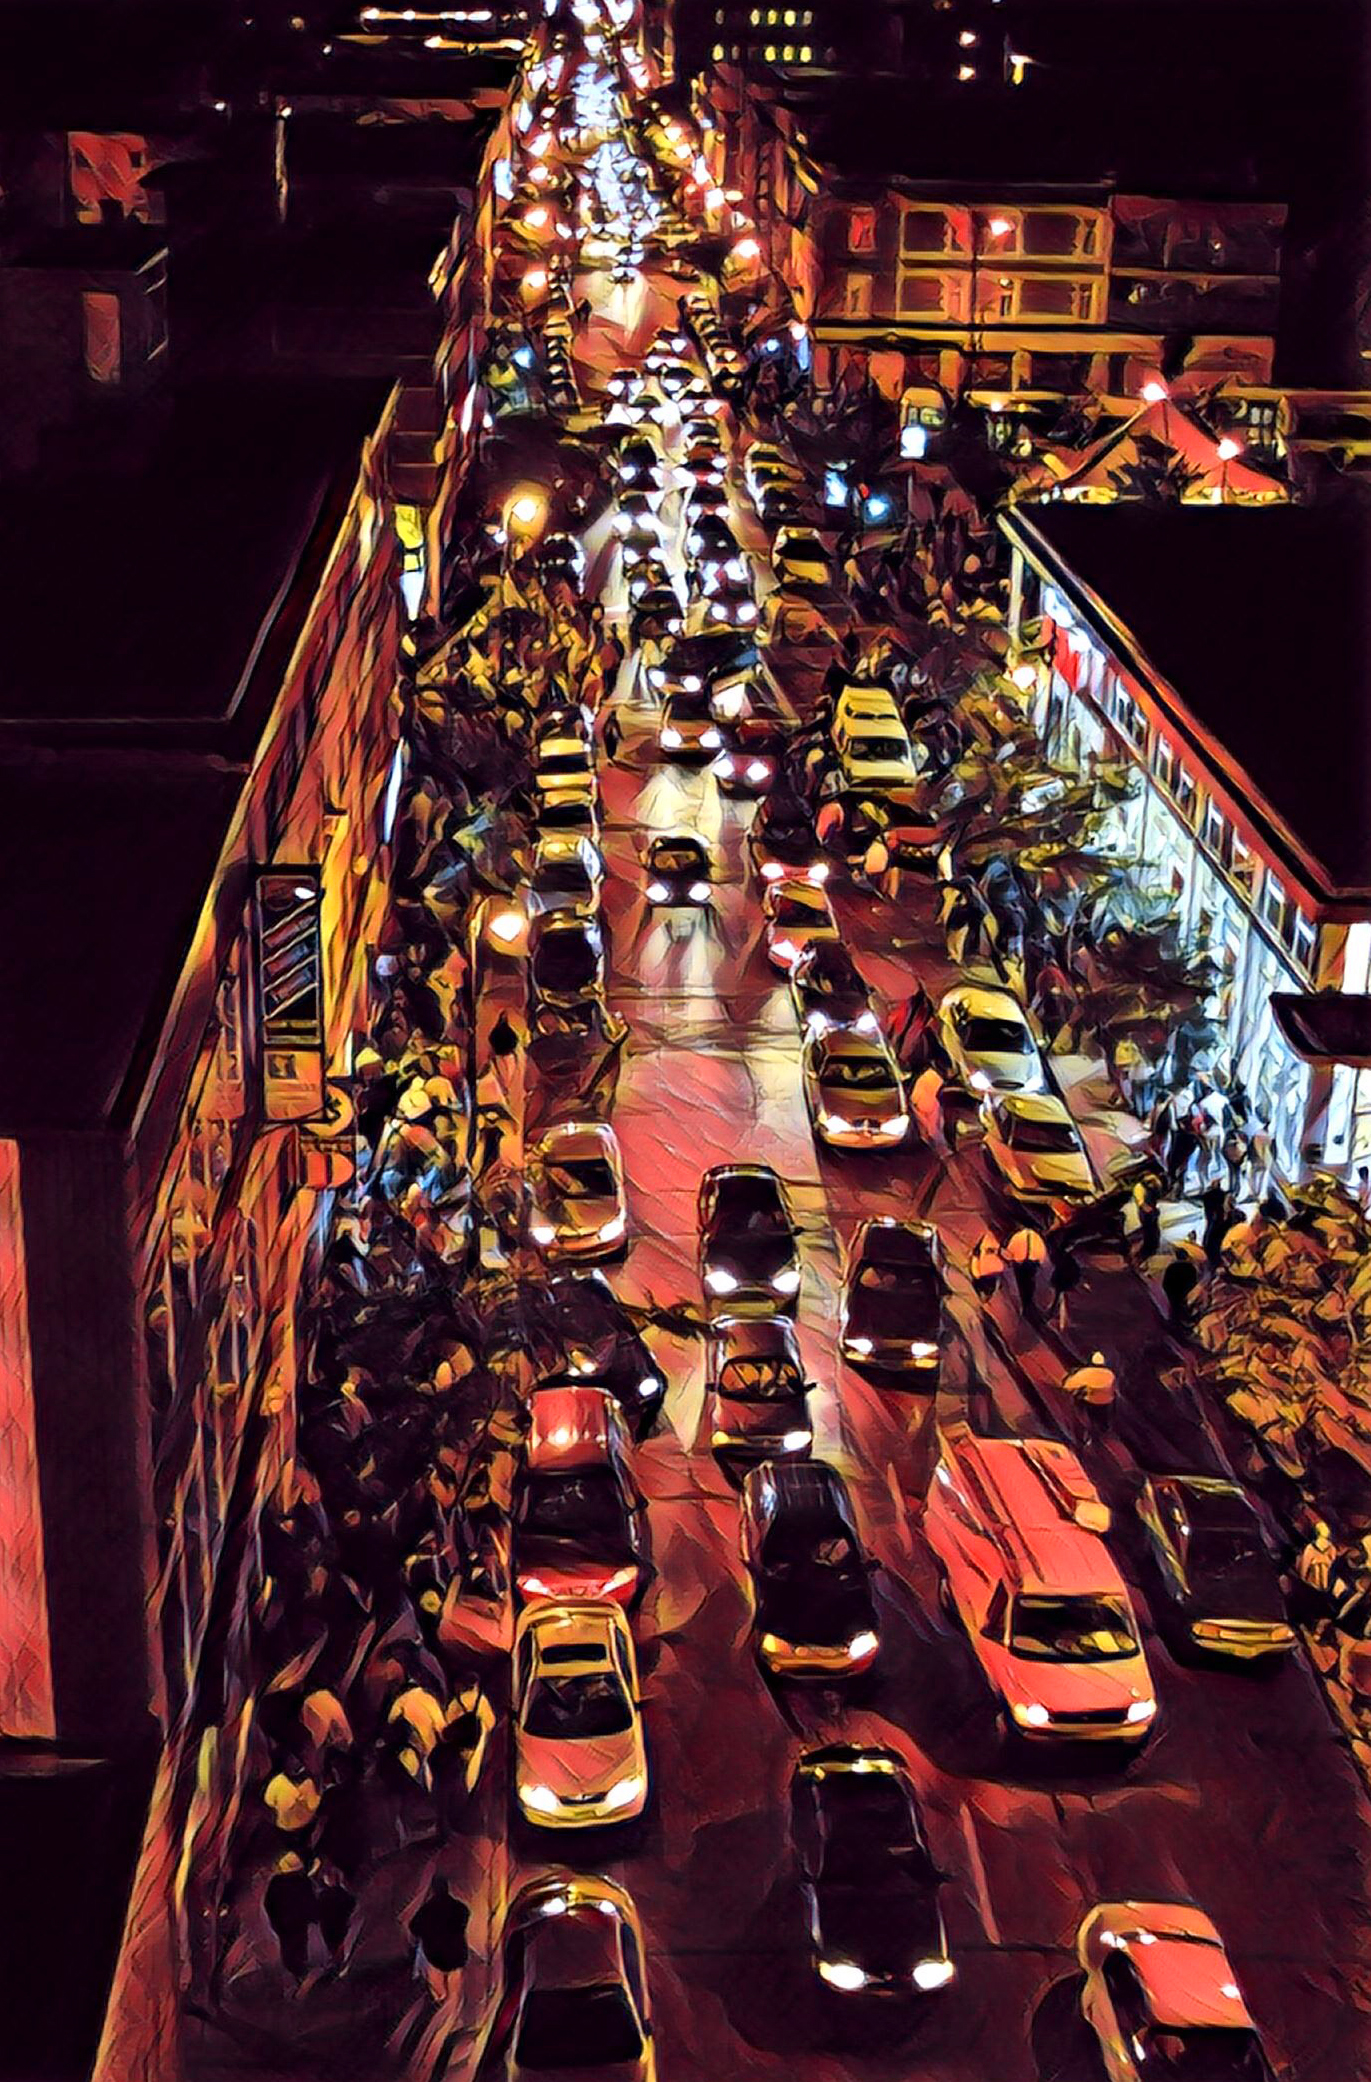 Night Traffic 4